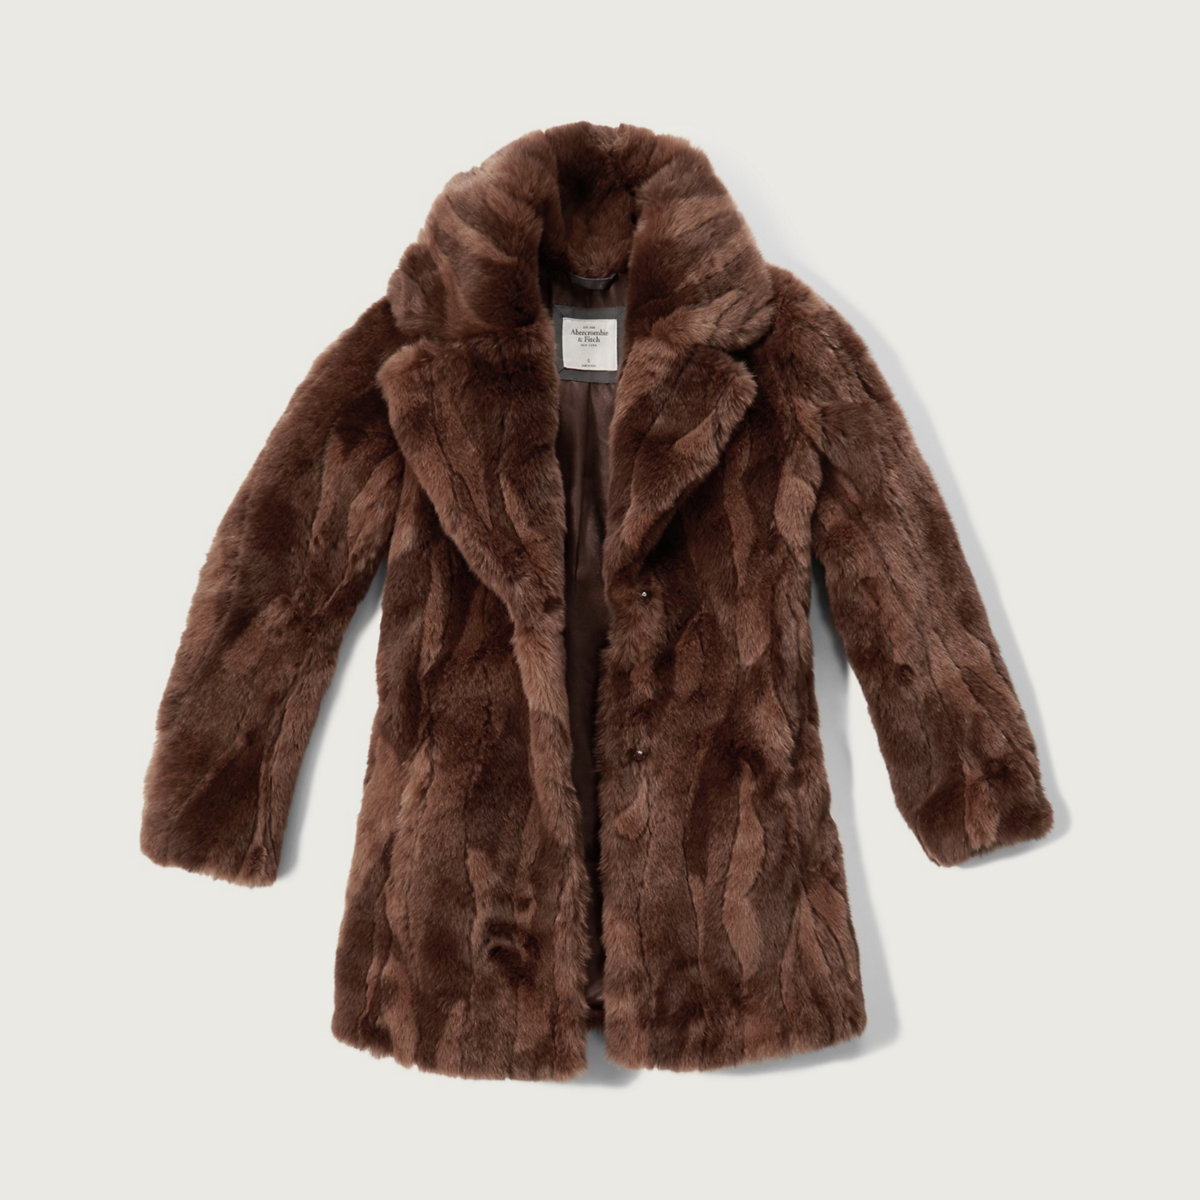 Long Faux Fur Jacket